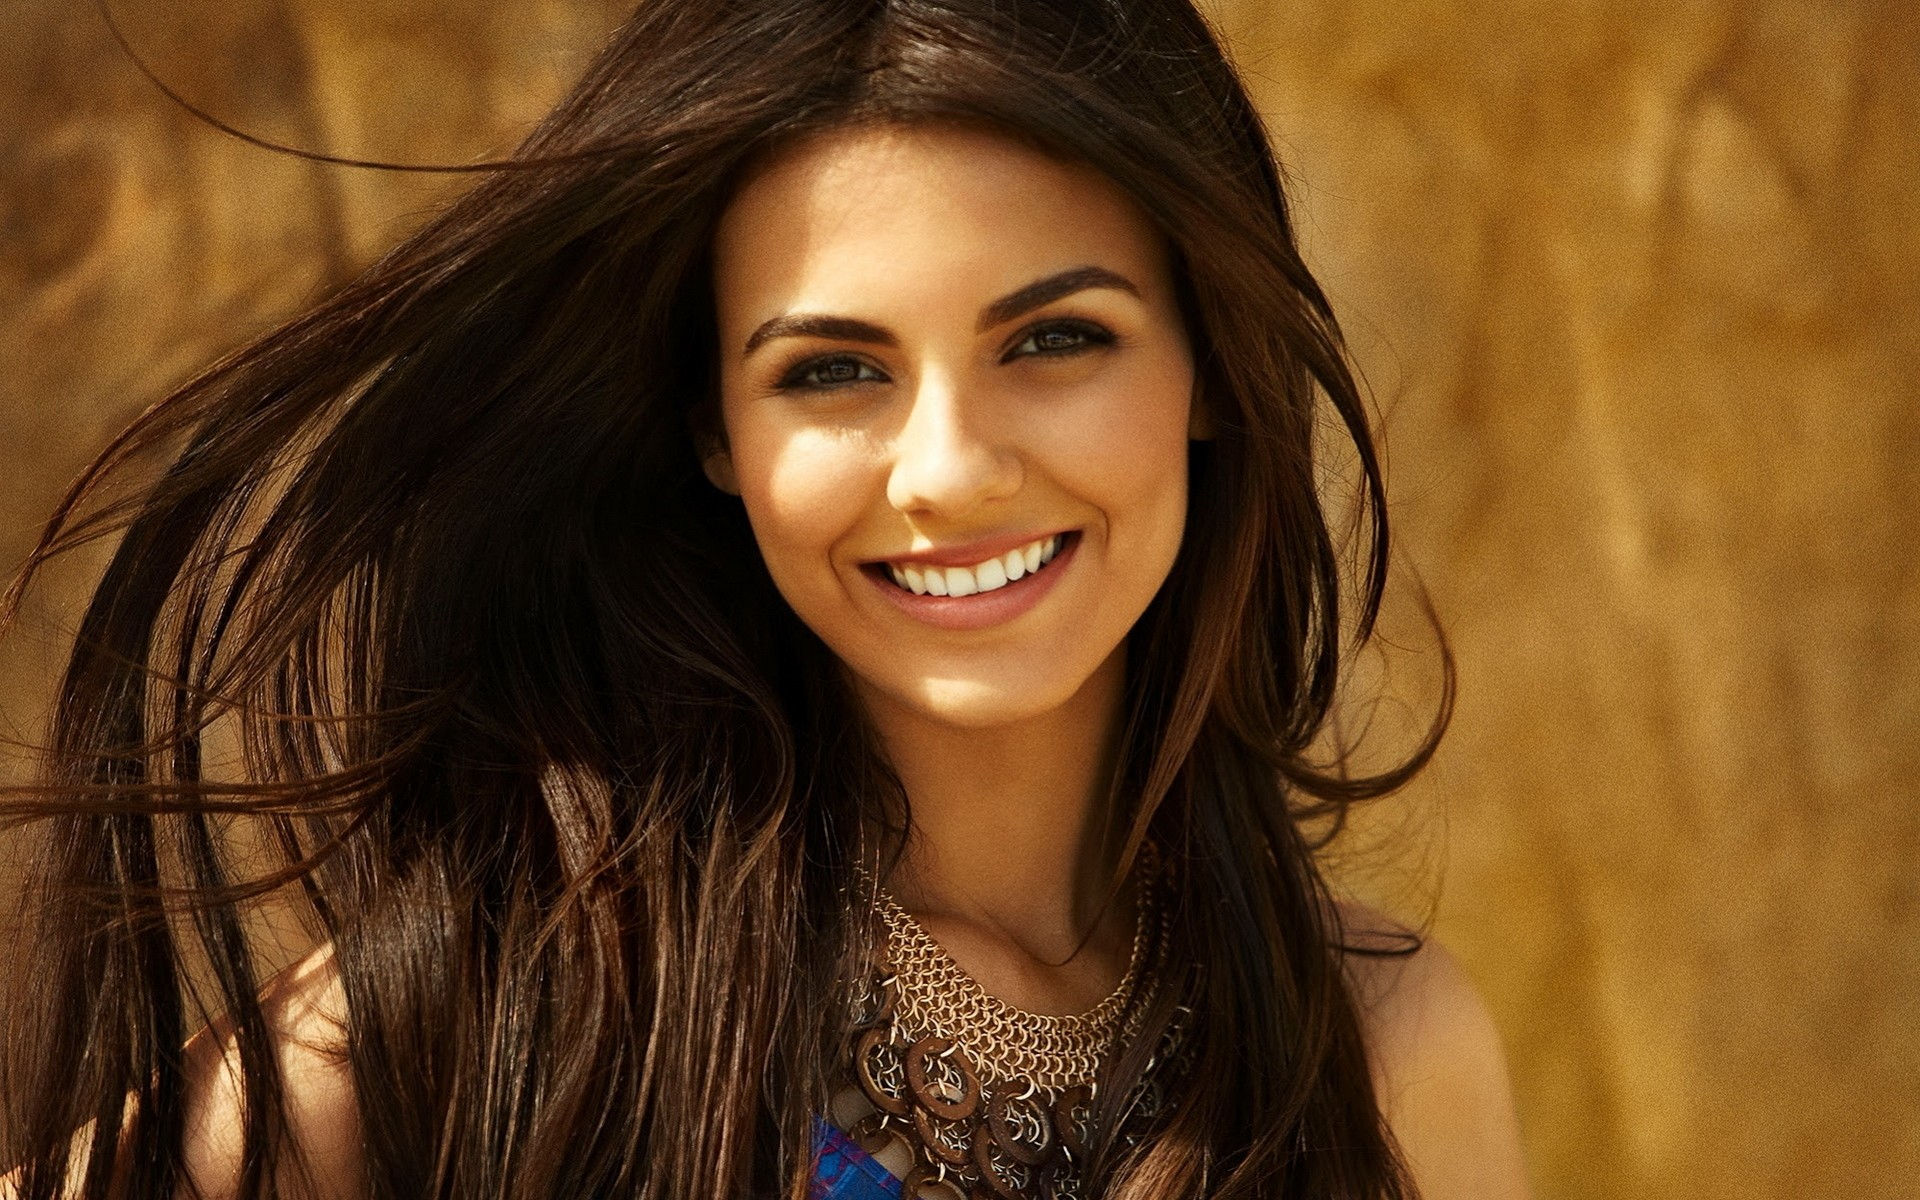 Cute Smile Of Victoria Justice Android Wallpapers For Free